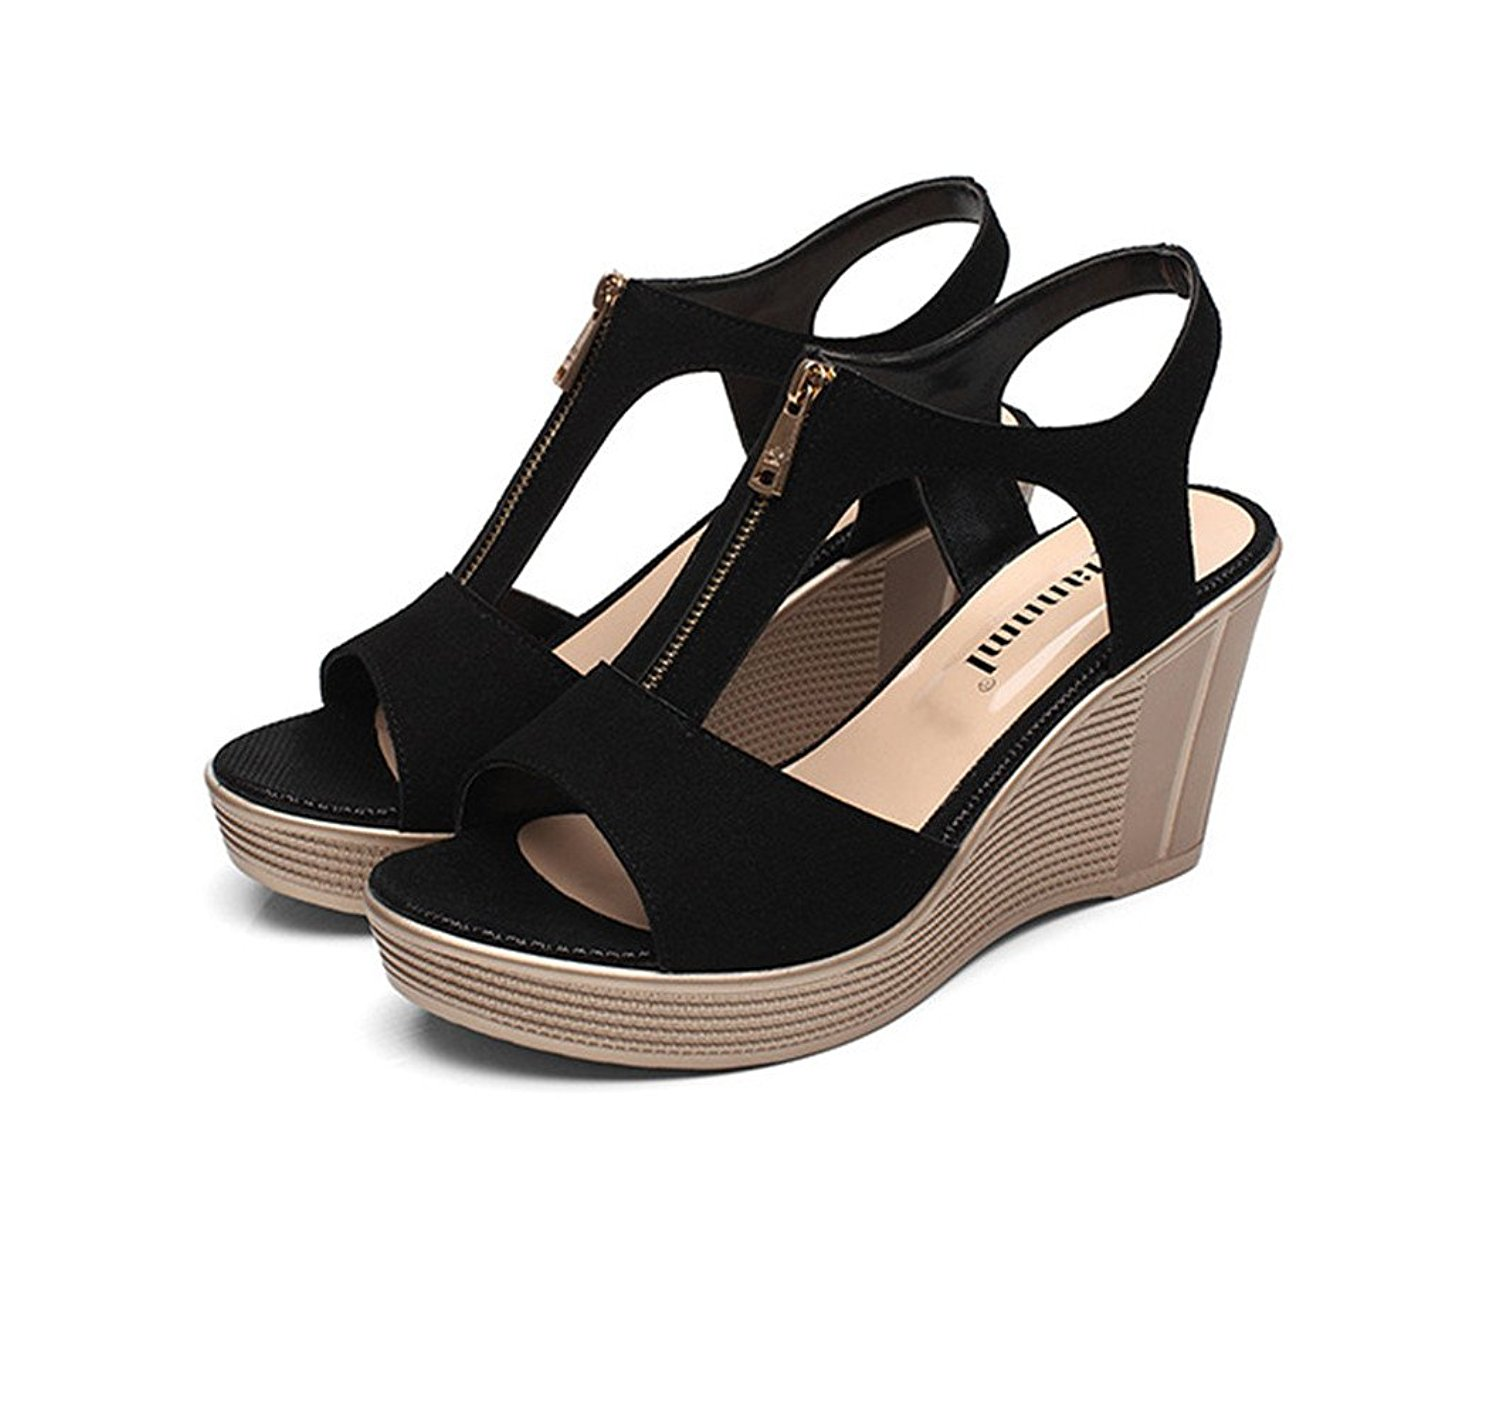 4c56ac5f5cf2 Get Quotations · INNICON Womens High Heeled Sandals Espadrille Platform  Wedges Wide Width Sandal Ankle Strap Slingback Suede Summer